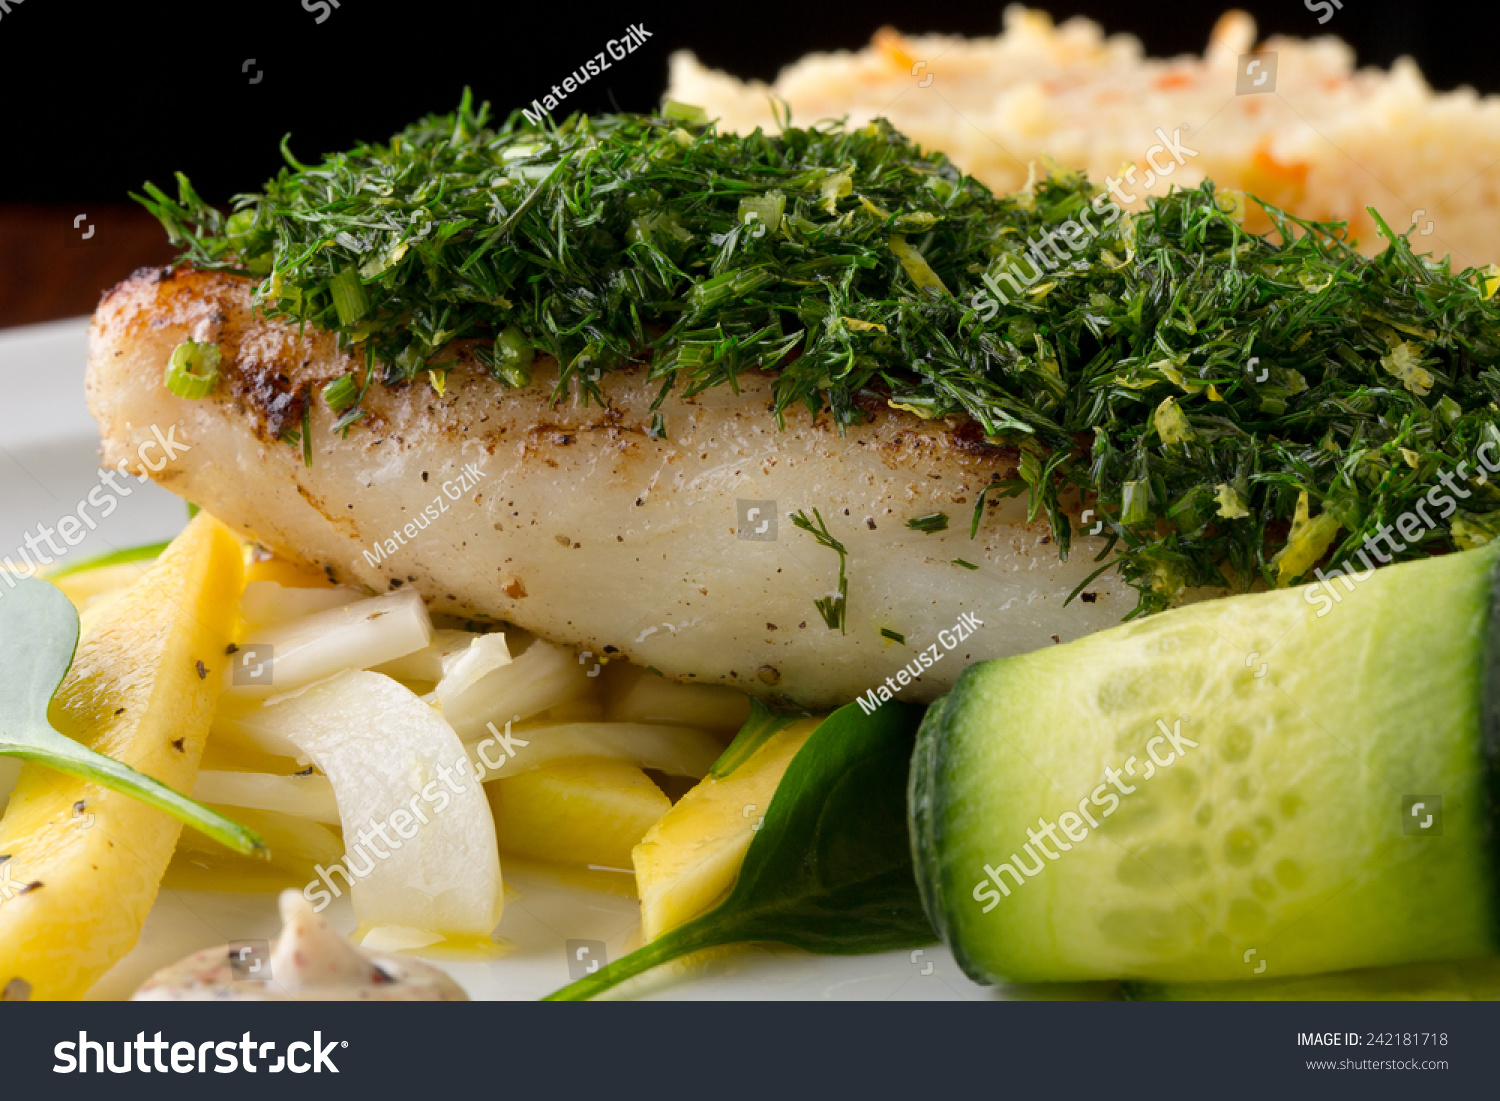 Cod fish with vegetables stock photo 242181718 shutterstock for What vegetables go with fish